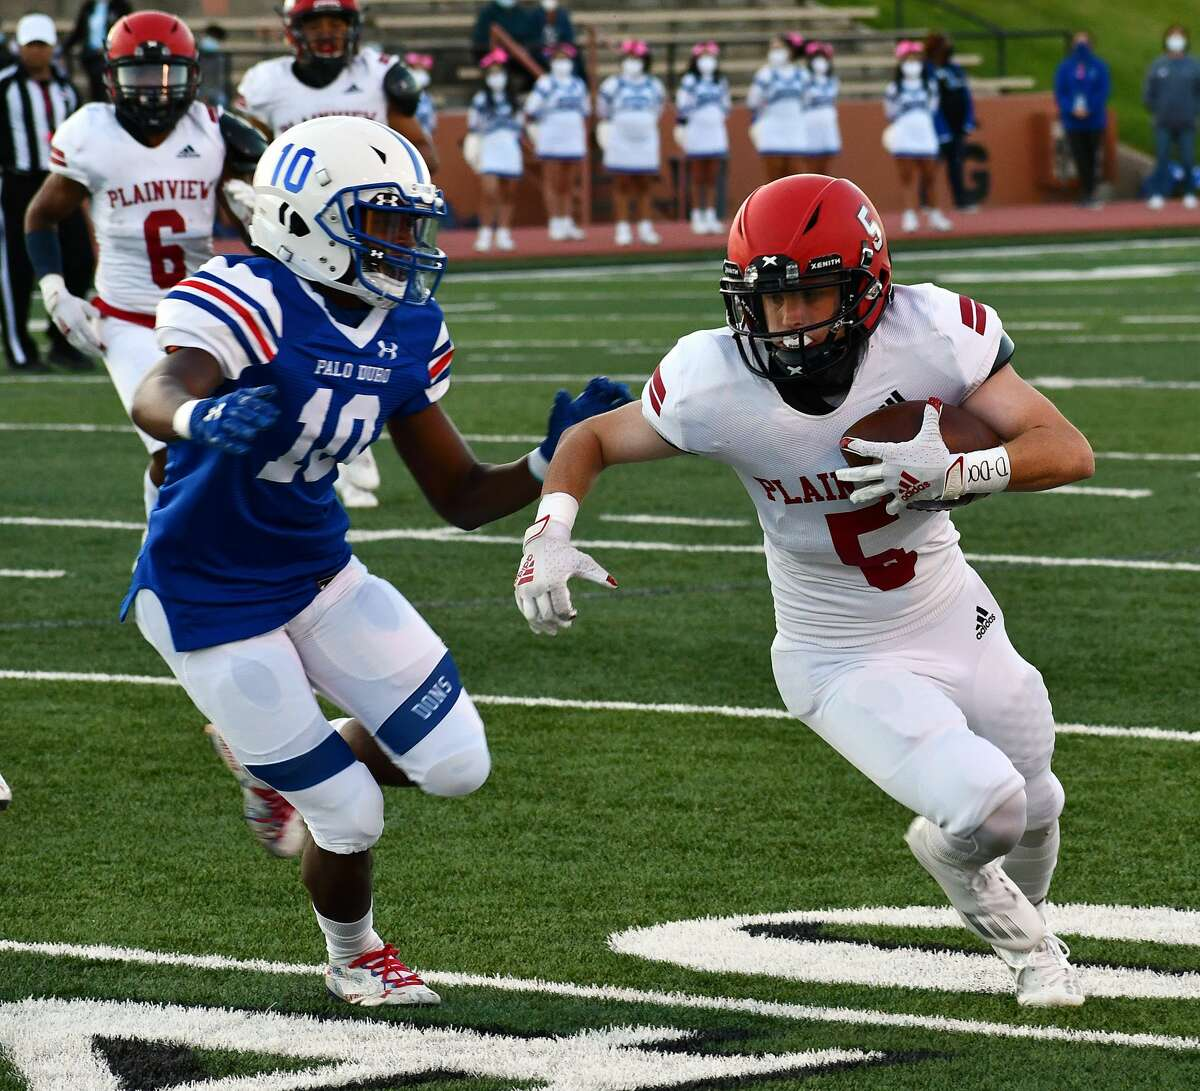 Austin Hauk takes one of his 12 receptions up the field against Palo Duro defender Antwon Lockett during their non-district high school football game on Oct. 1, 2020 in Dick Bivins Stadium in Amarillo.